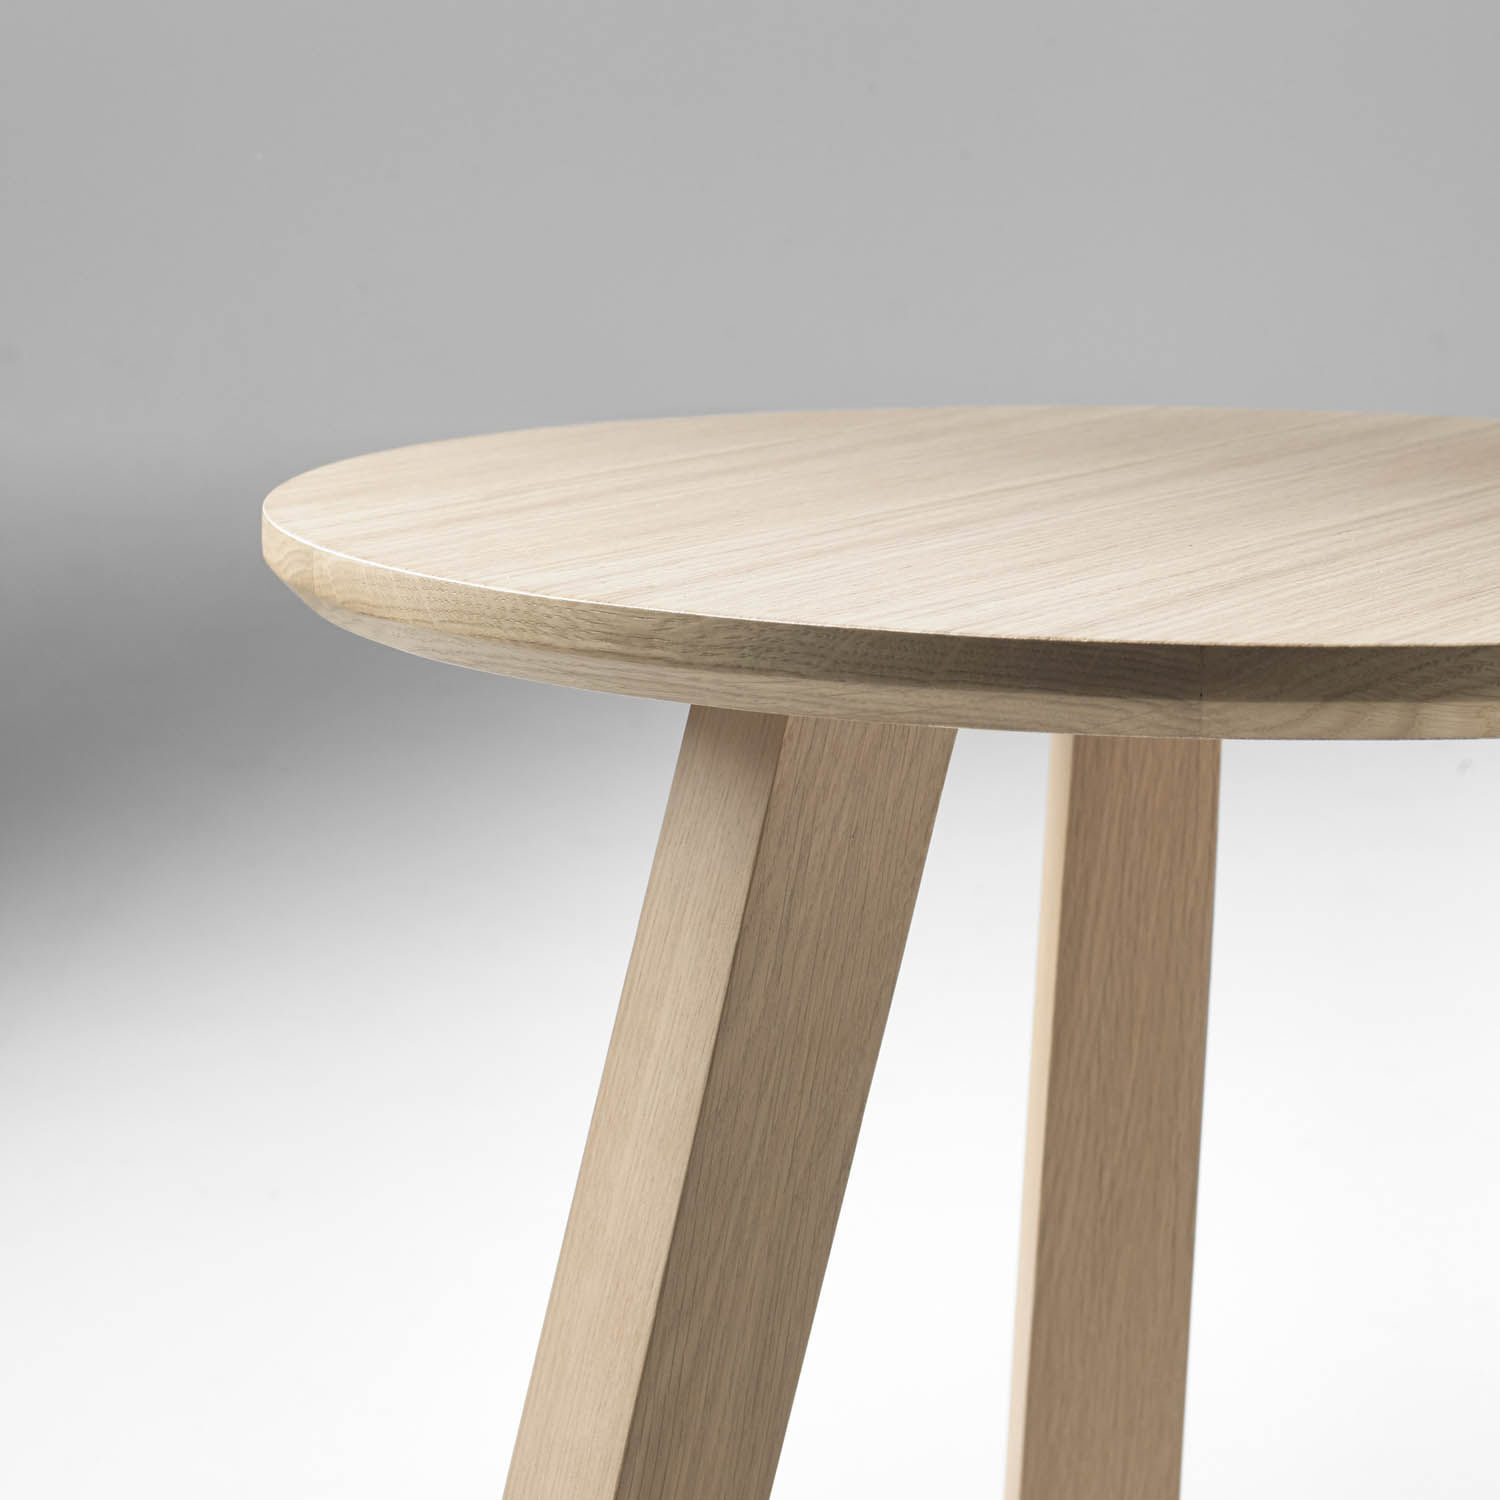 Contemporary coffee table oak round modular ESCAMP by Abad